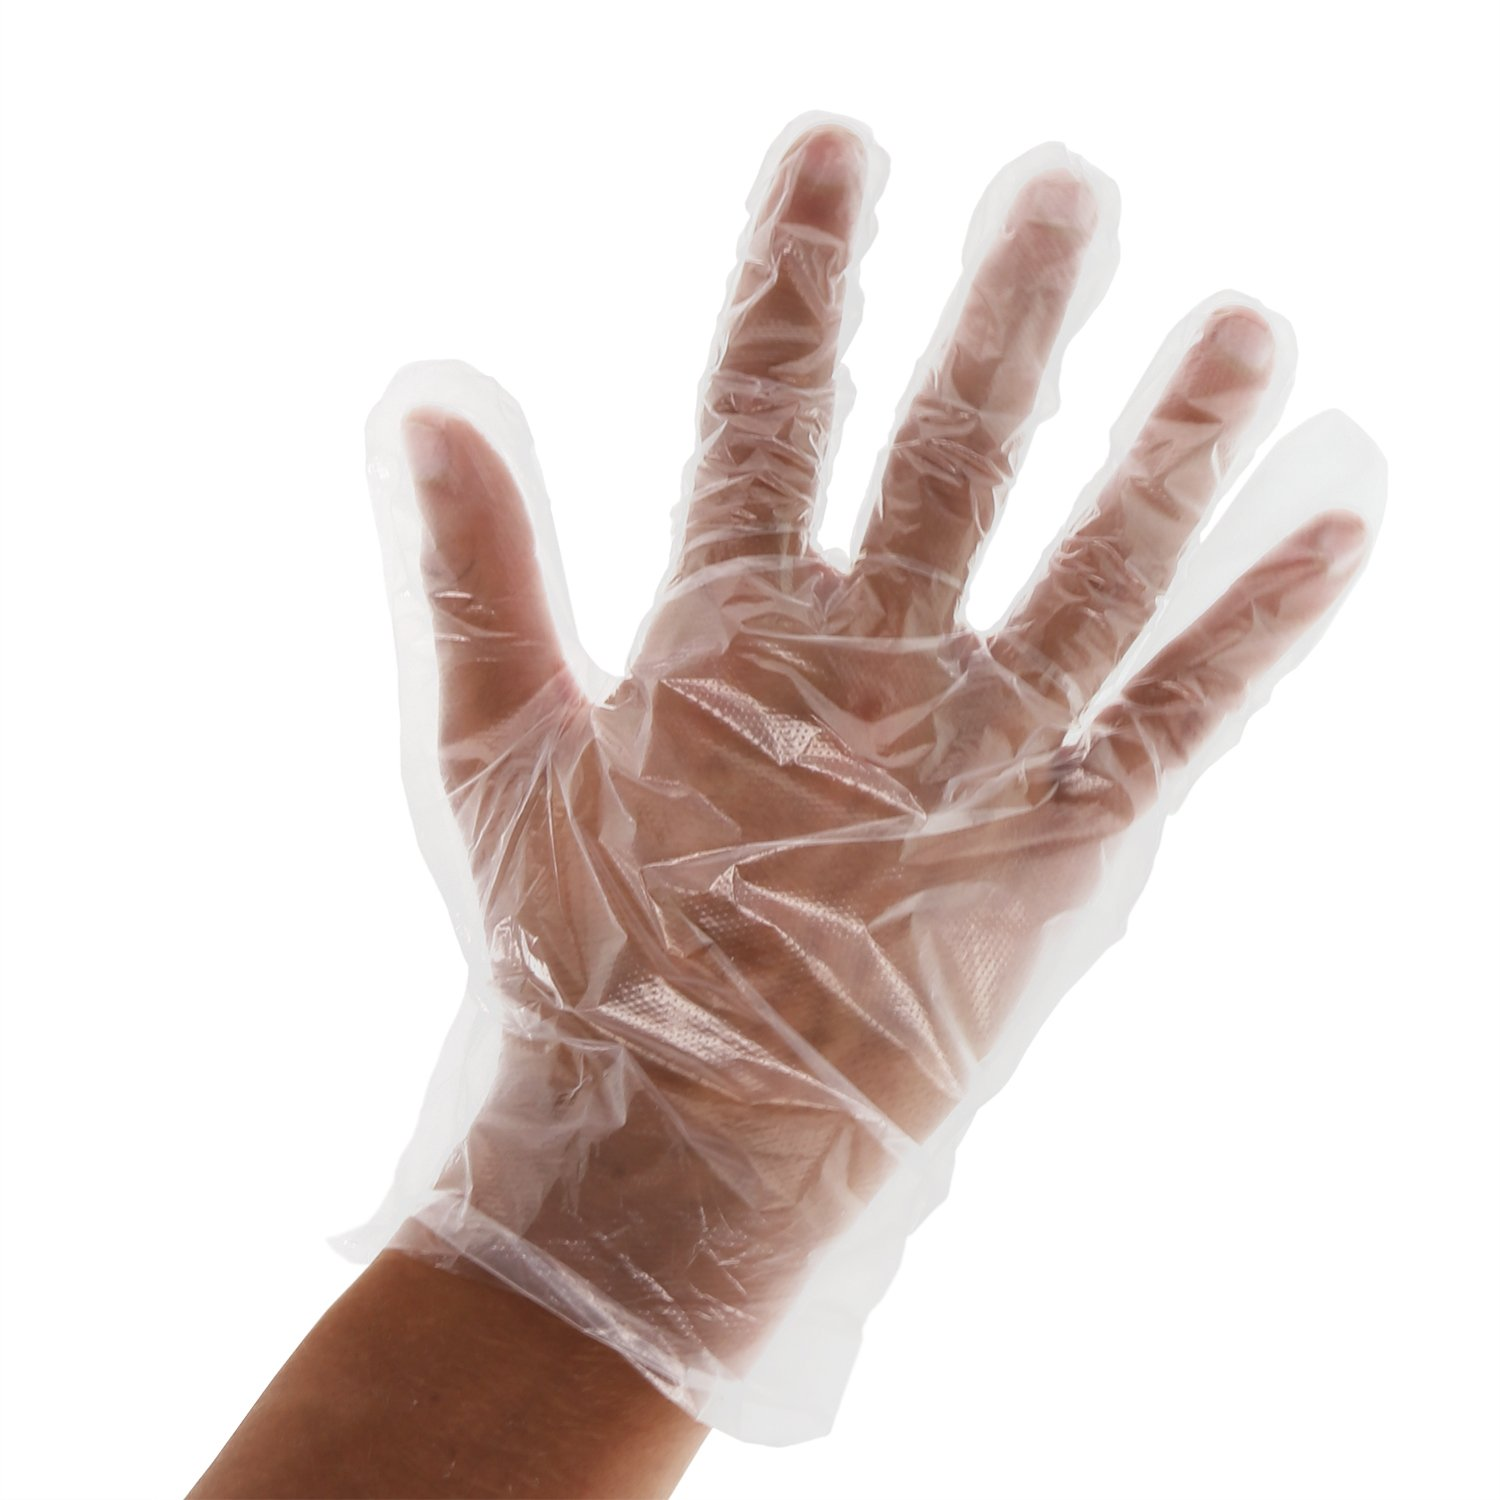 Royal Premium Disposable Poly Gloves, Extra Large, Case of 2,000